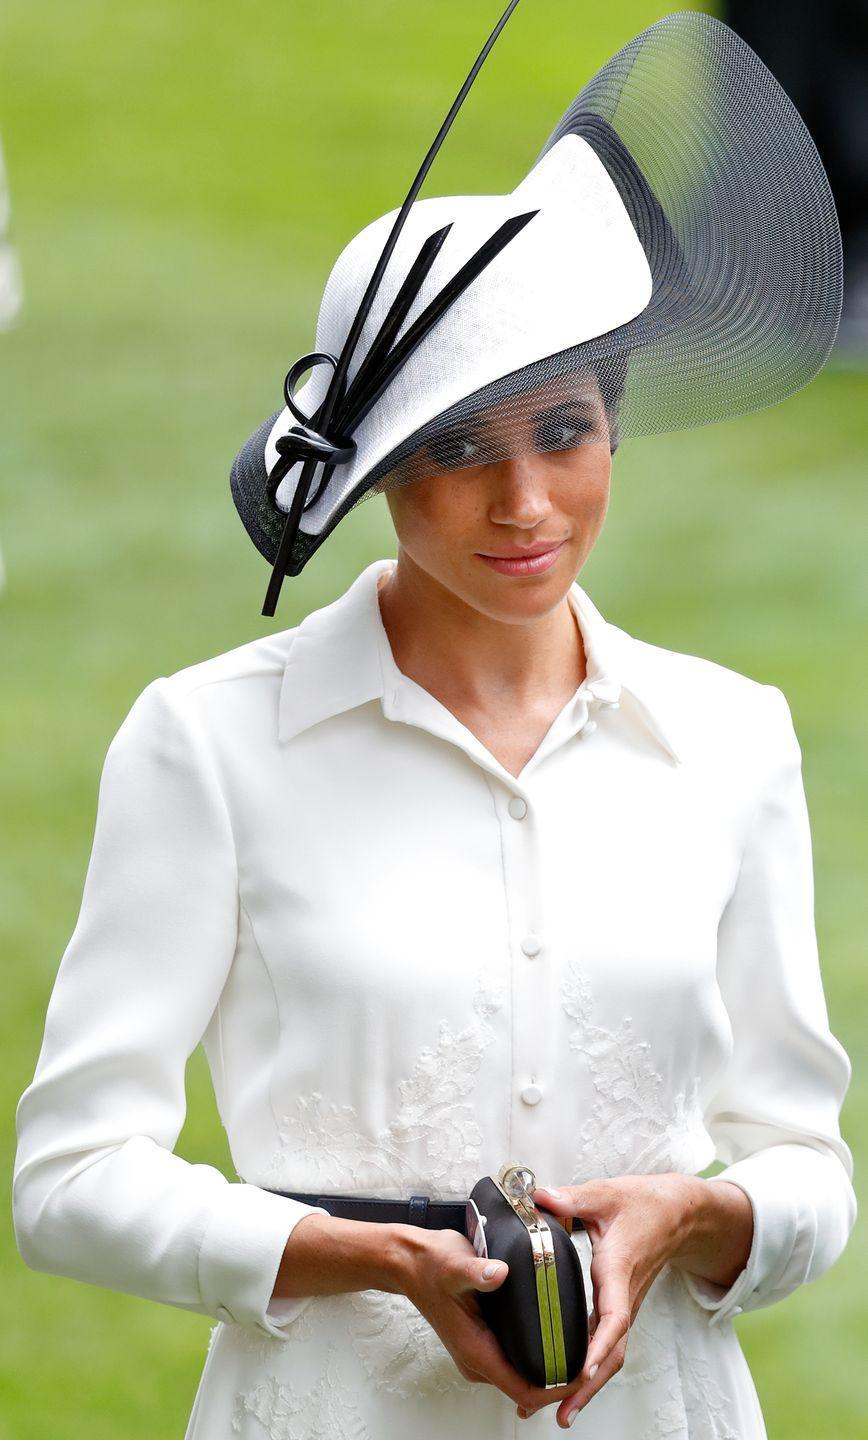 "<p>That's not to say that Kate's the only Windsor who knows how to accessorize at Ascot, though. <a href=""https://www.townandcountrymag.com/society/tradition/a21614131/meghan-markle-royal-ascot-2018-kate-middleton-comparison/"" rel=""nofollow noopener"" target=""_blank"" data-ylk=""slk:For her first-ever appearance at the annual royal event, Meghan"" class=""link rapid-noclick-resp"">For her first-ever appearance at the annual royal event, Meghan</a> chose a sculptural Philip Treacy hat.<br></p>"